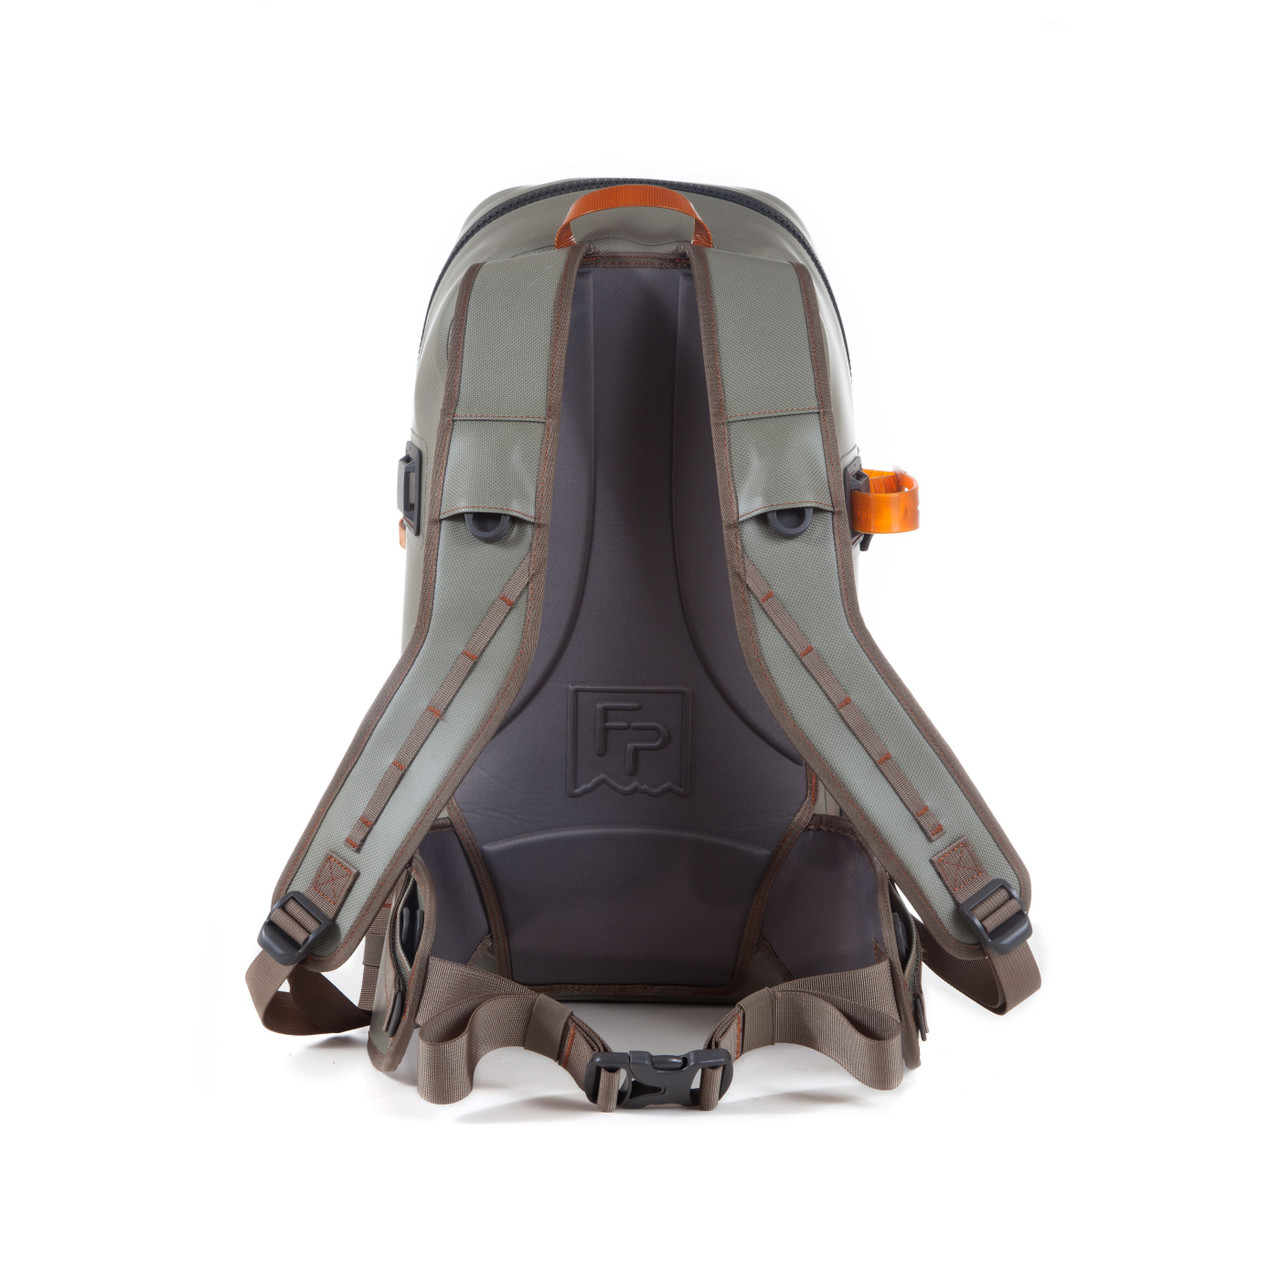 Fishpond Thunderhead Submersible Backpack, Shale